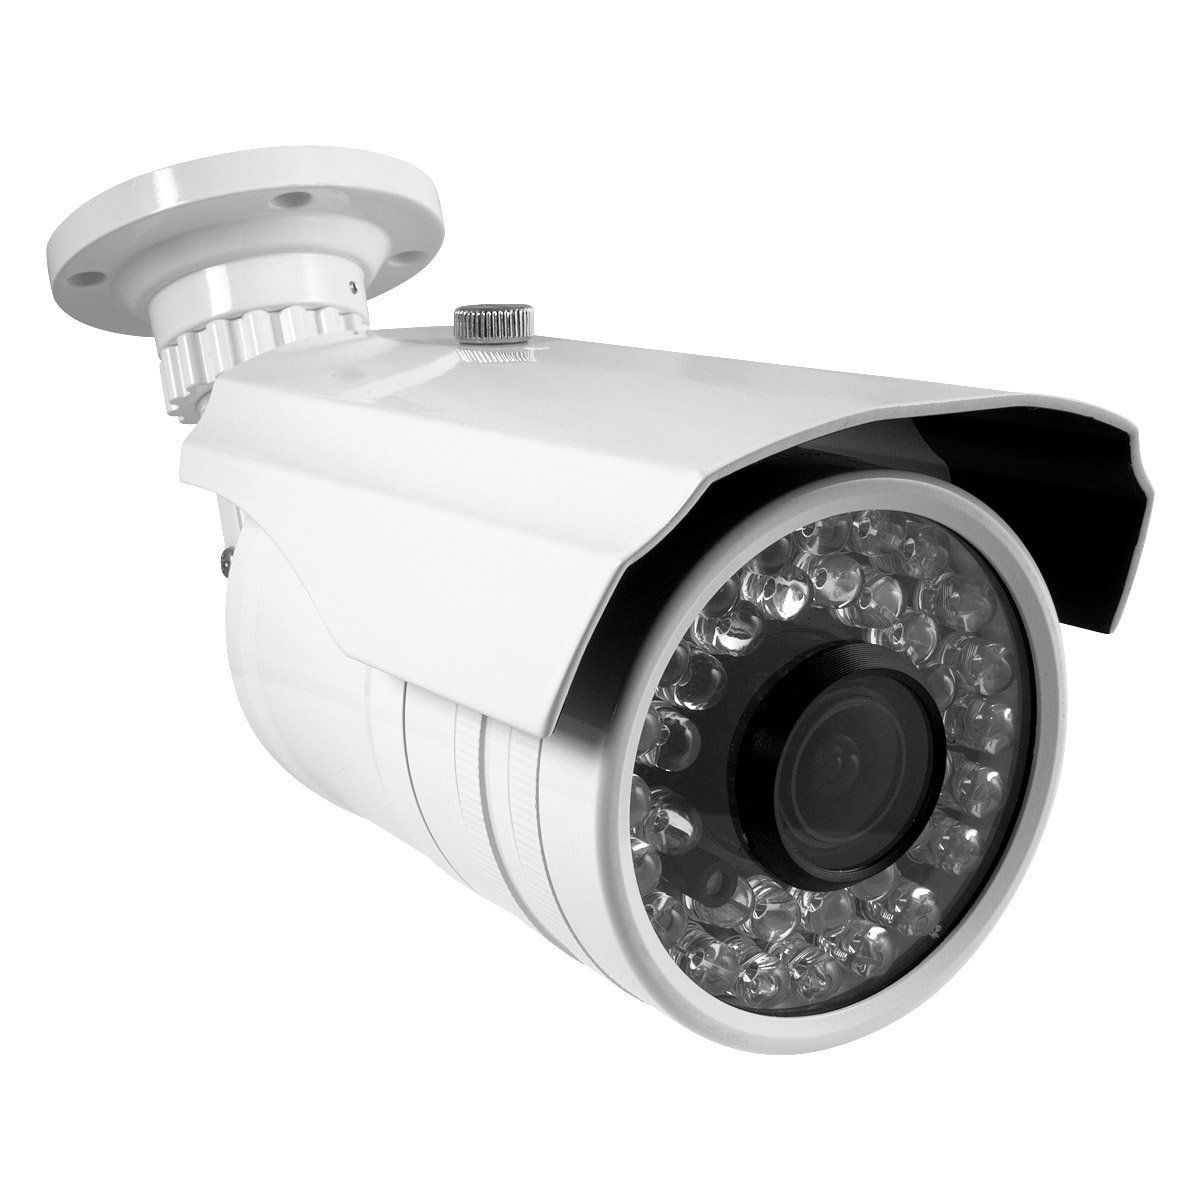 Hazy Beauty  Security Analog Camera 800TV 1200TVL Outdoor Bullet Security Camera with Night Vision and 2.8mm 3.6mm 6mm 12mm ikonbit tv hunter analog recorder u55